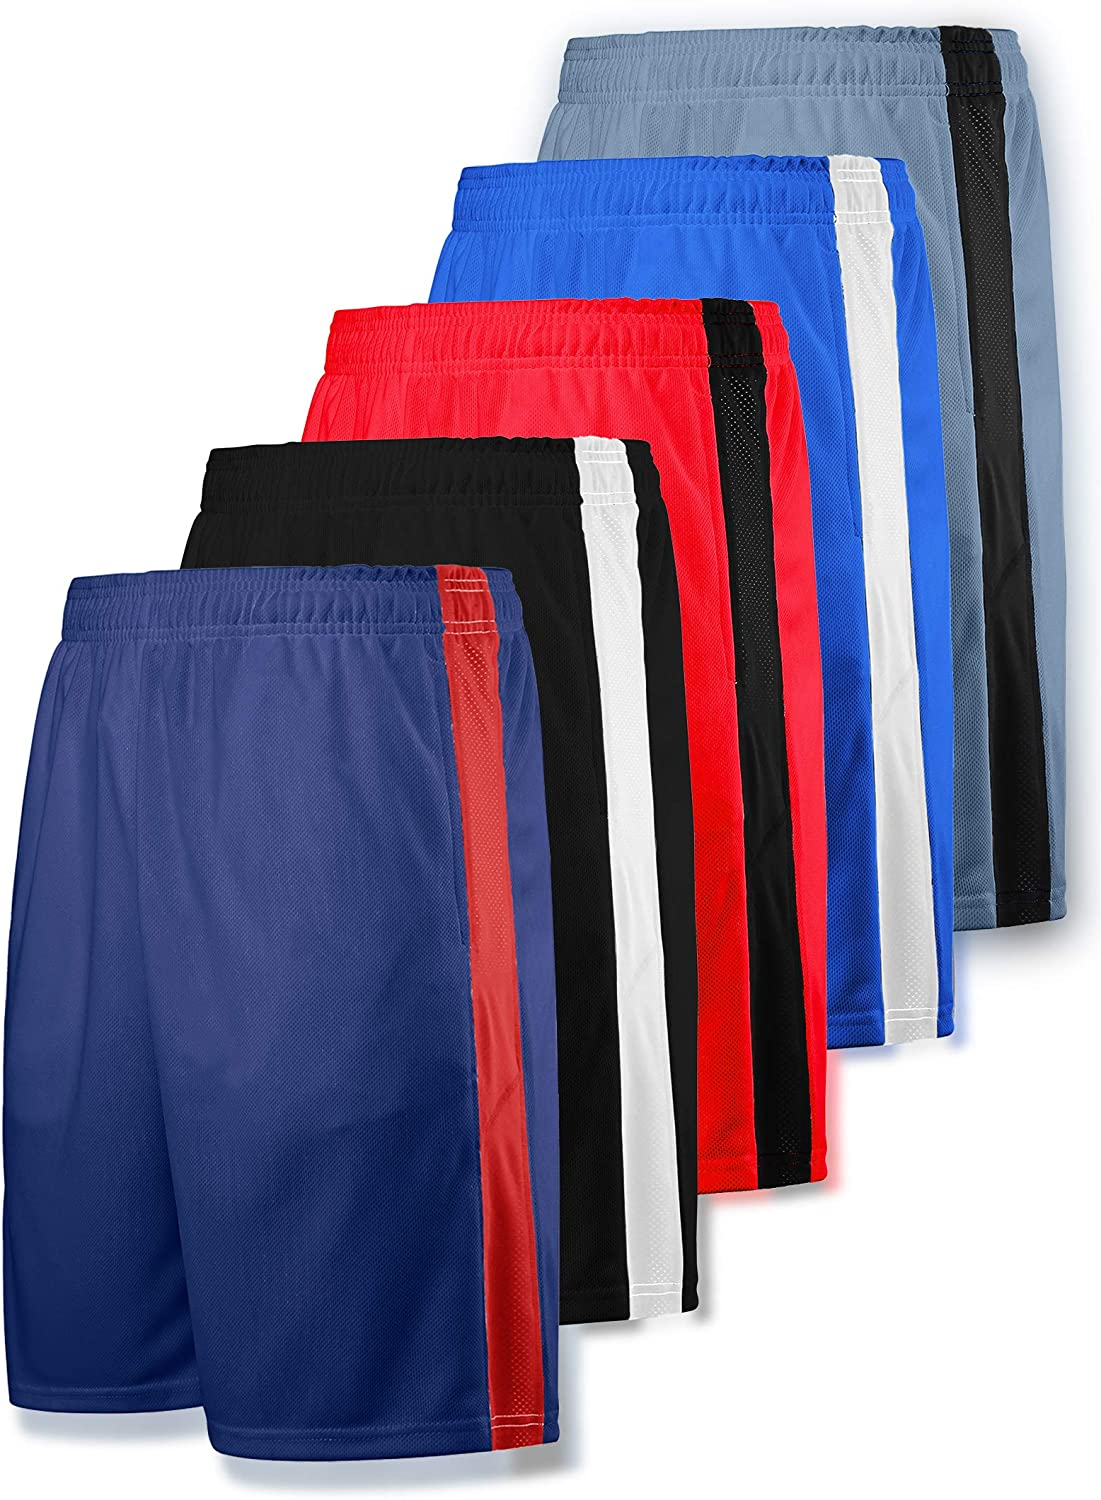 Liberty Imports Pack of 5 Men's Athletic Basketball Shorts Mesh Quick Dry Activewear with Pocket at  Men's Clothing store